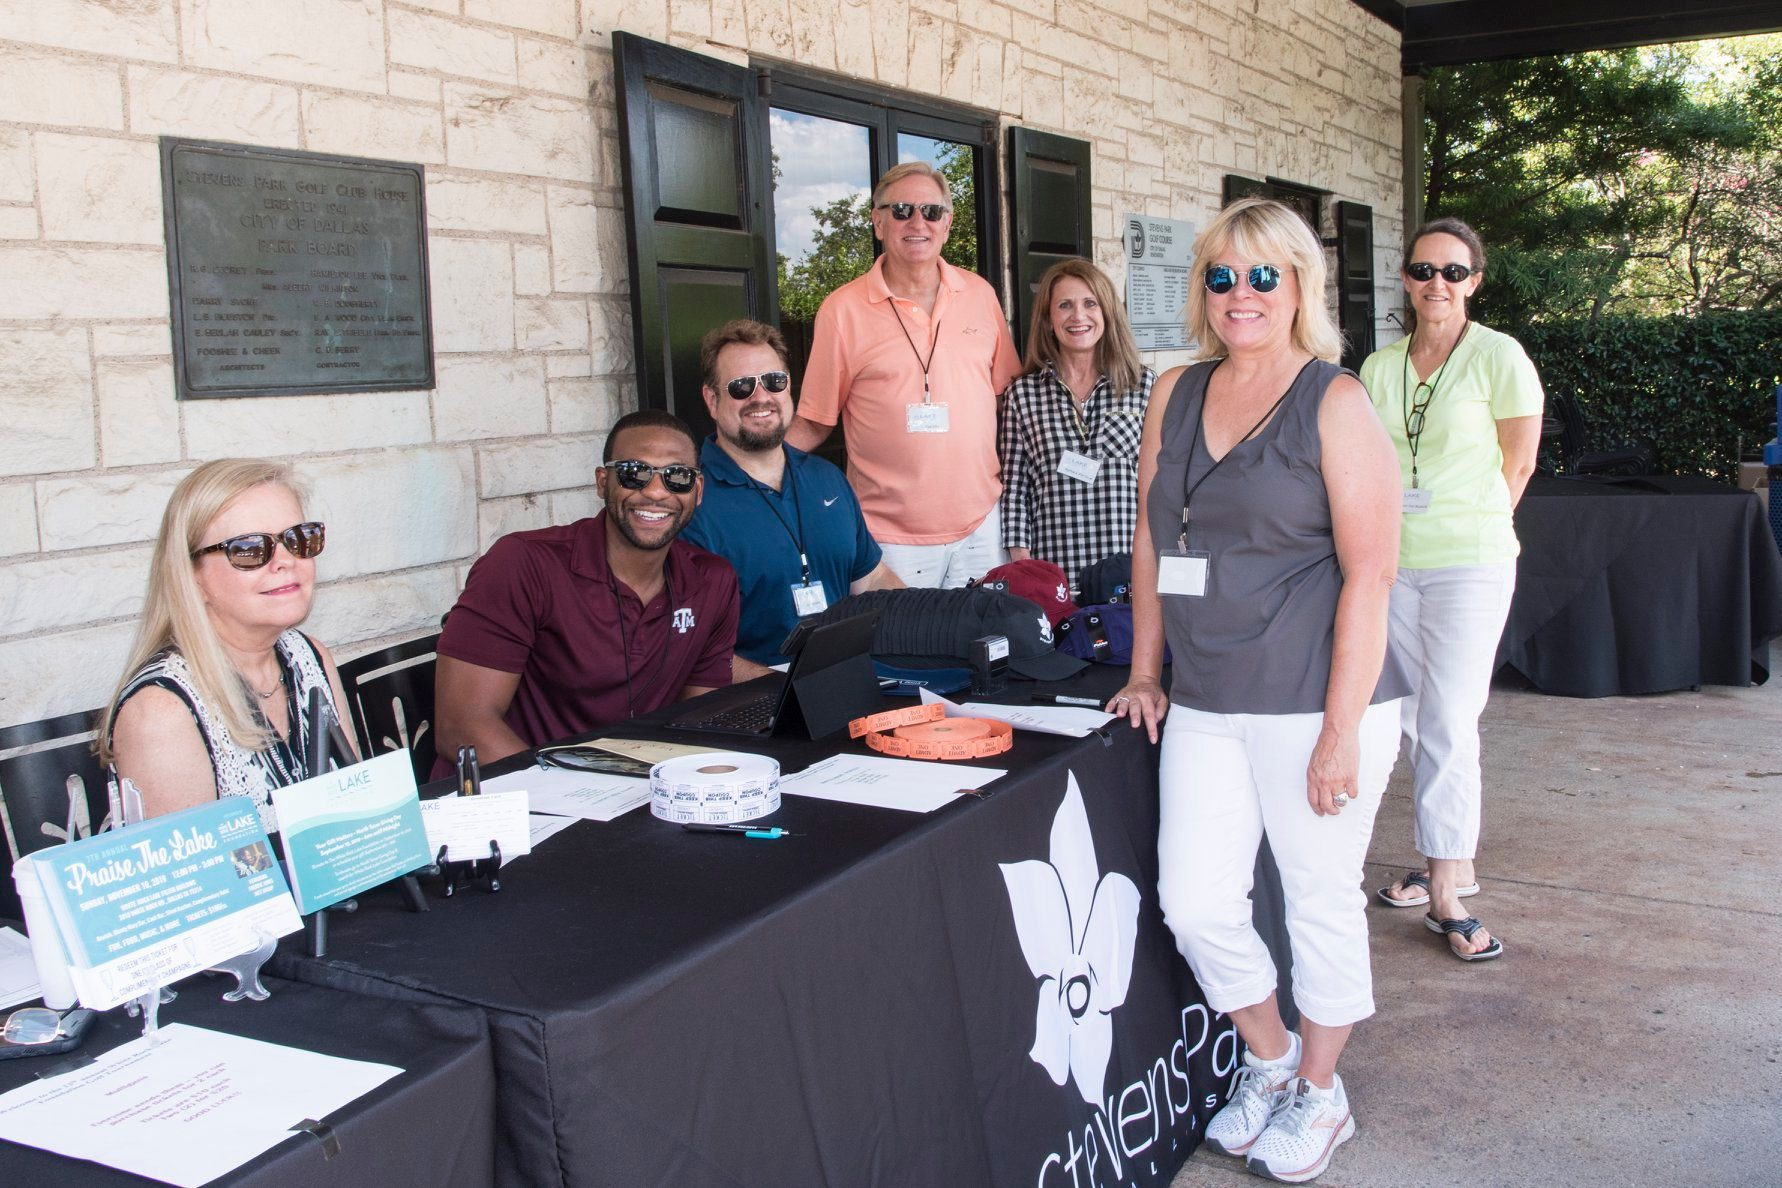 White Rock Lake Foundation Annual Golf Tournament: Board Members at the event registration table